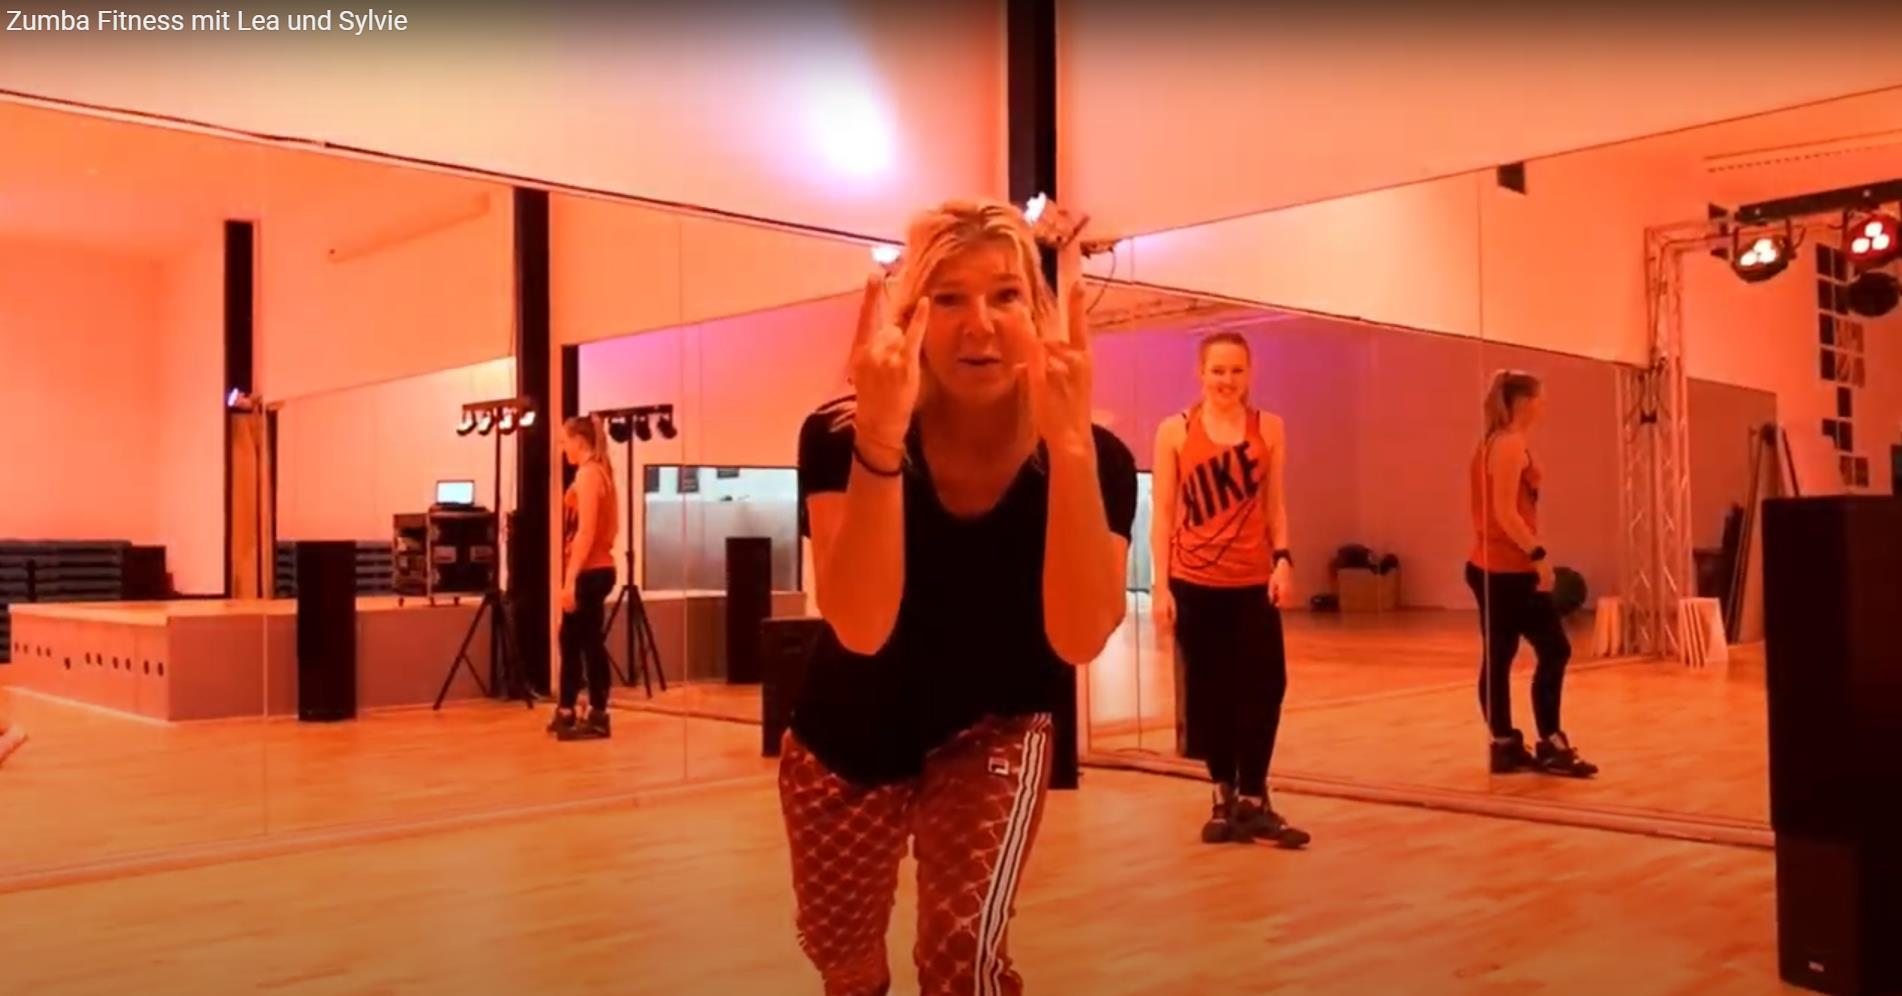 Sylvia Lea Zumba Fitness Video